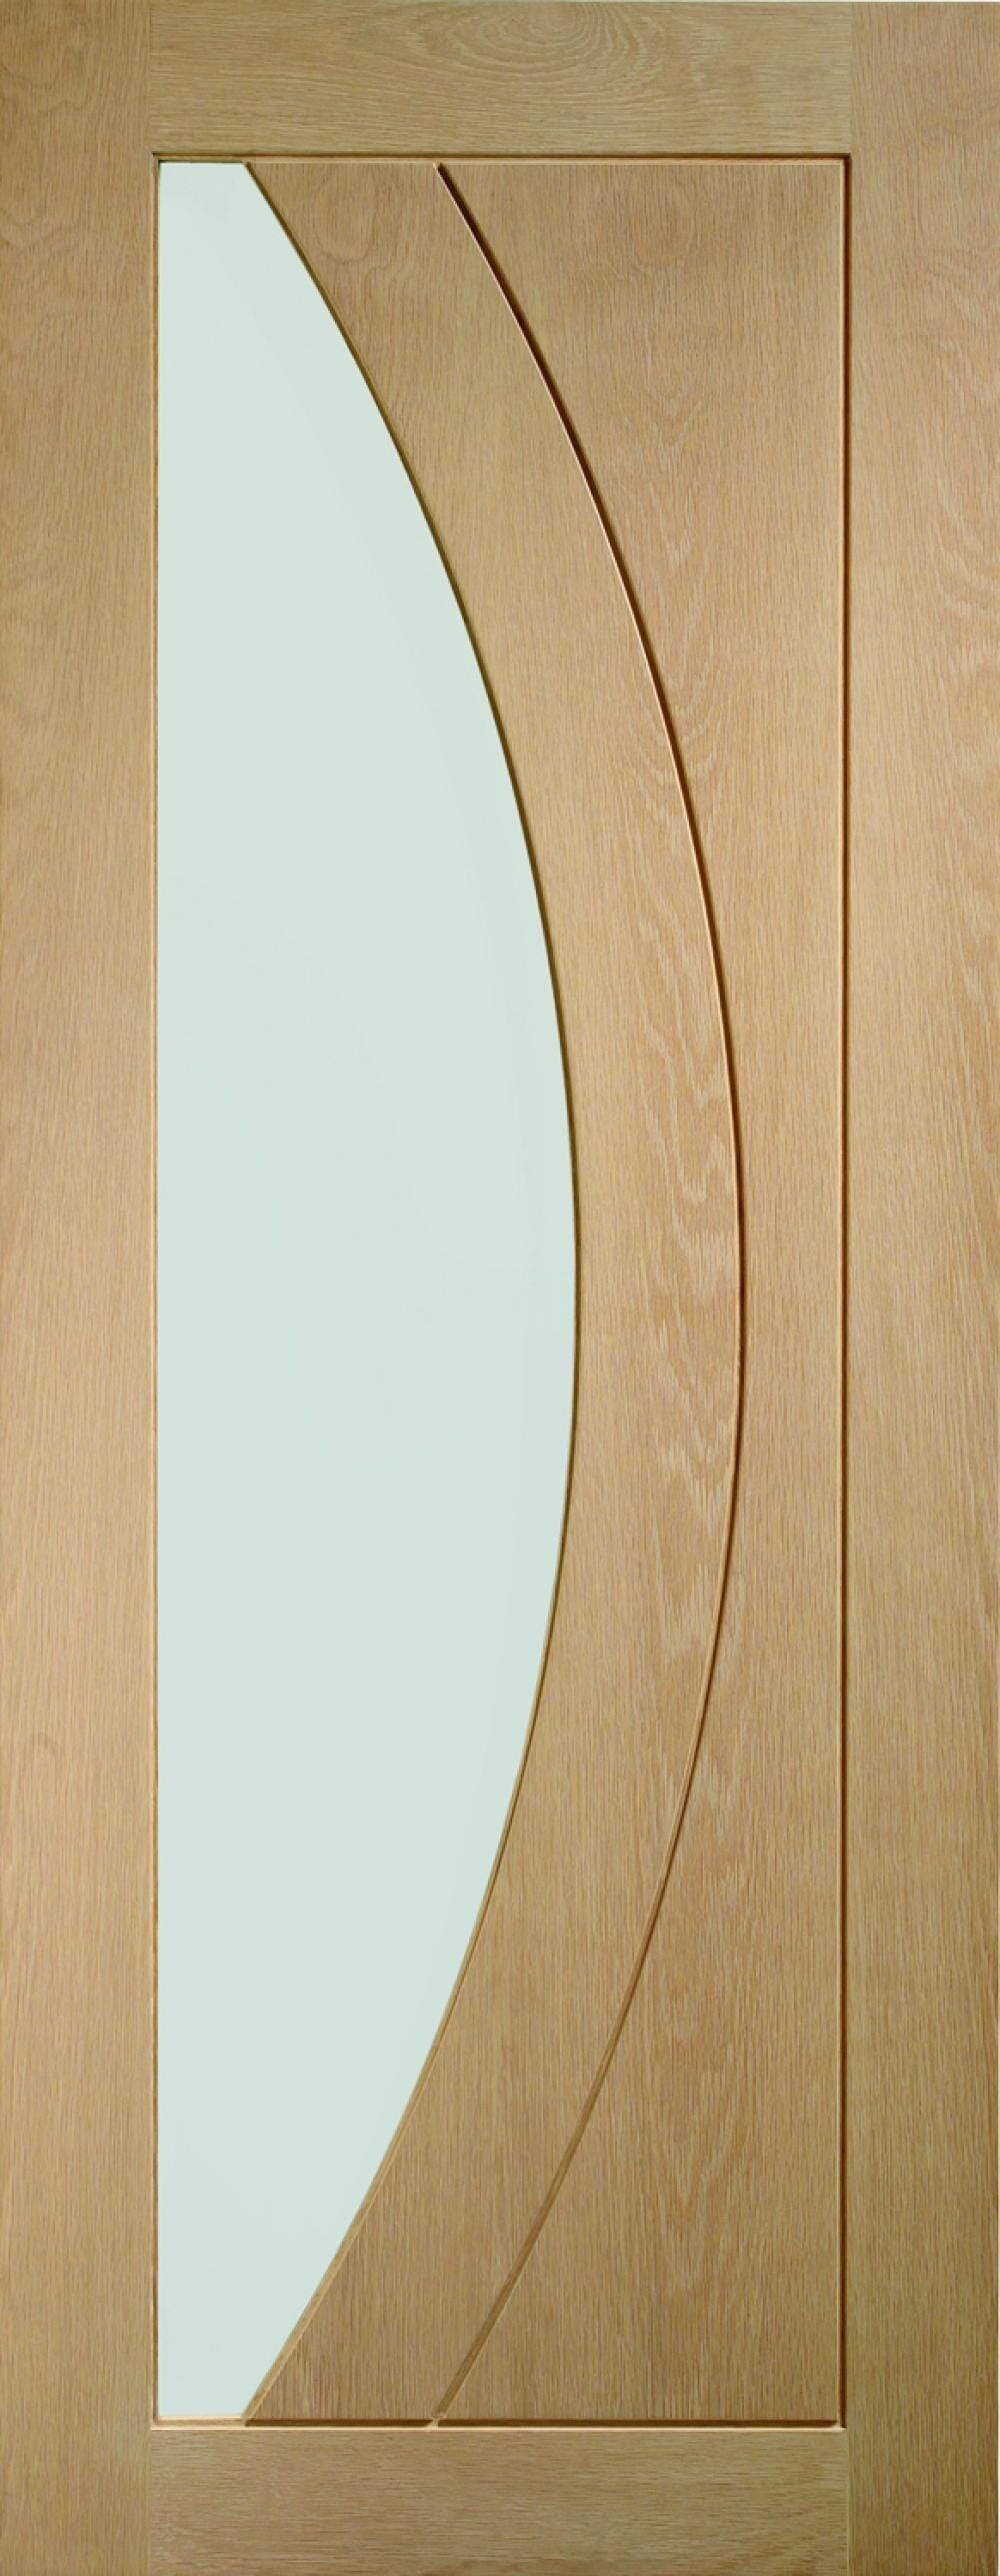 Salerno Oak - Prefinished Clear Glass Image